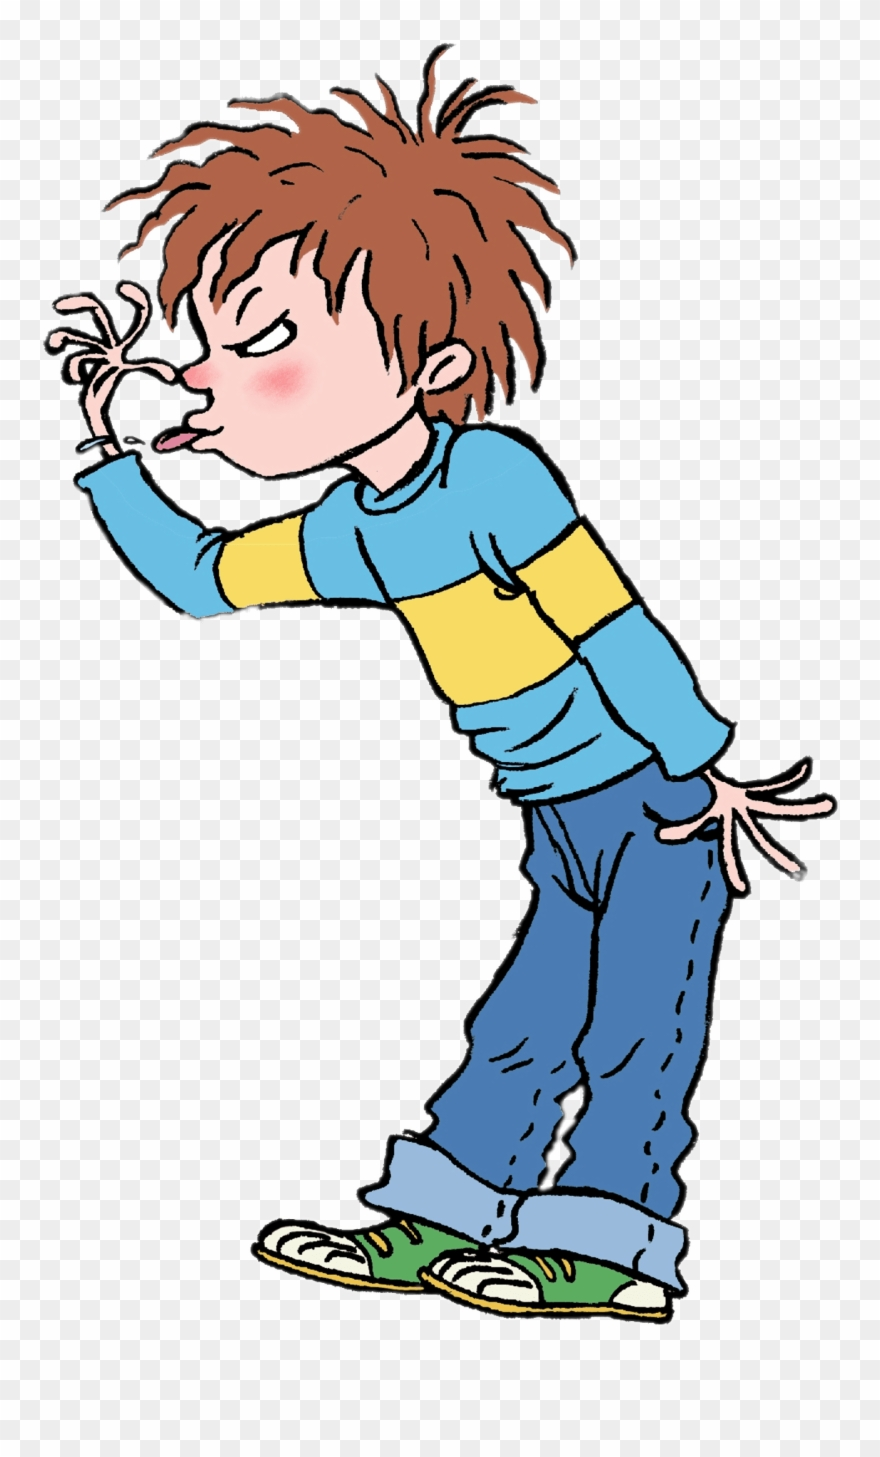 Horrid Henry Sticking Out Tongue Transparent Png.